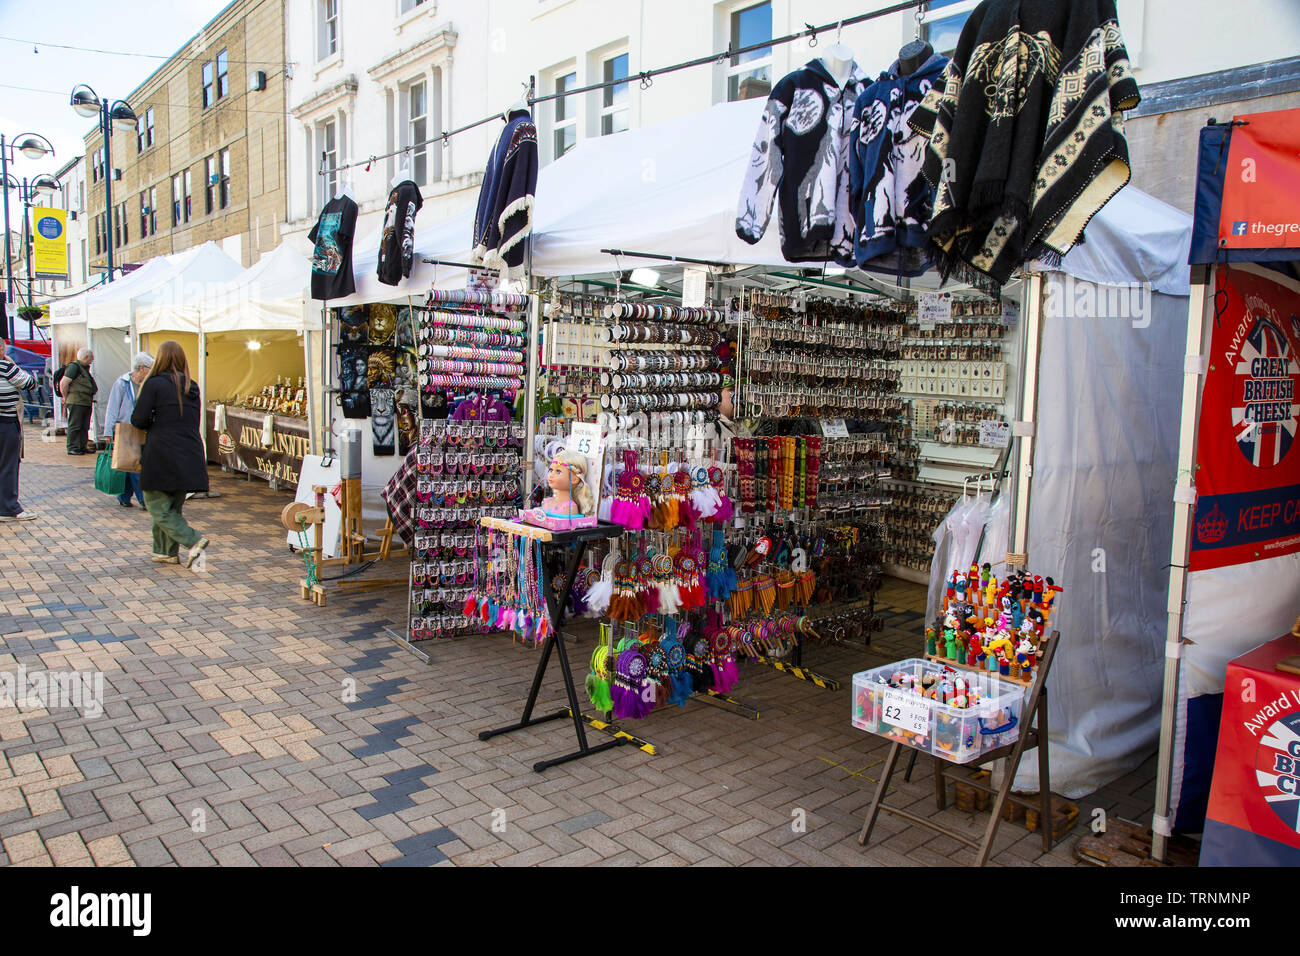 Open street market stall selling trinkets,  jewellery, bangles, adornments and bracelets during an International Street market event in West Yorkshire - Stock Image